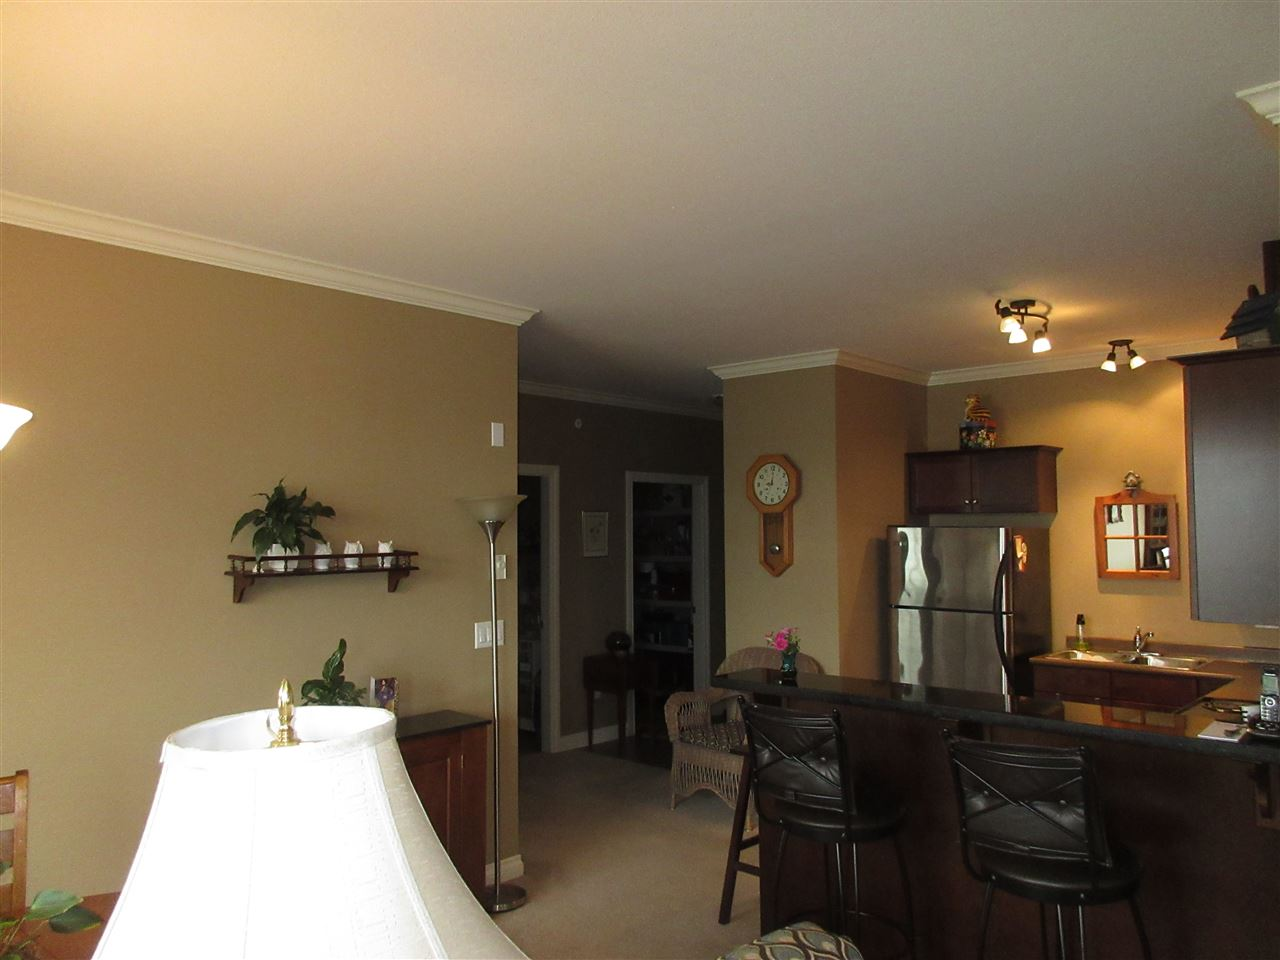 "Photo 5: 303 46053 CHILLIWACK CENTRAL Road in Chilliwack: Chilliwack E Young-Yale Condo for sale in ""The Tuscany"" : MLS(r) # R2175379"